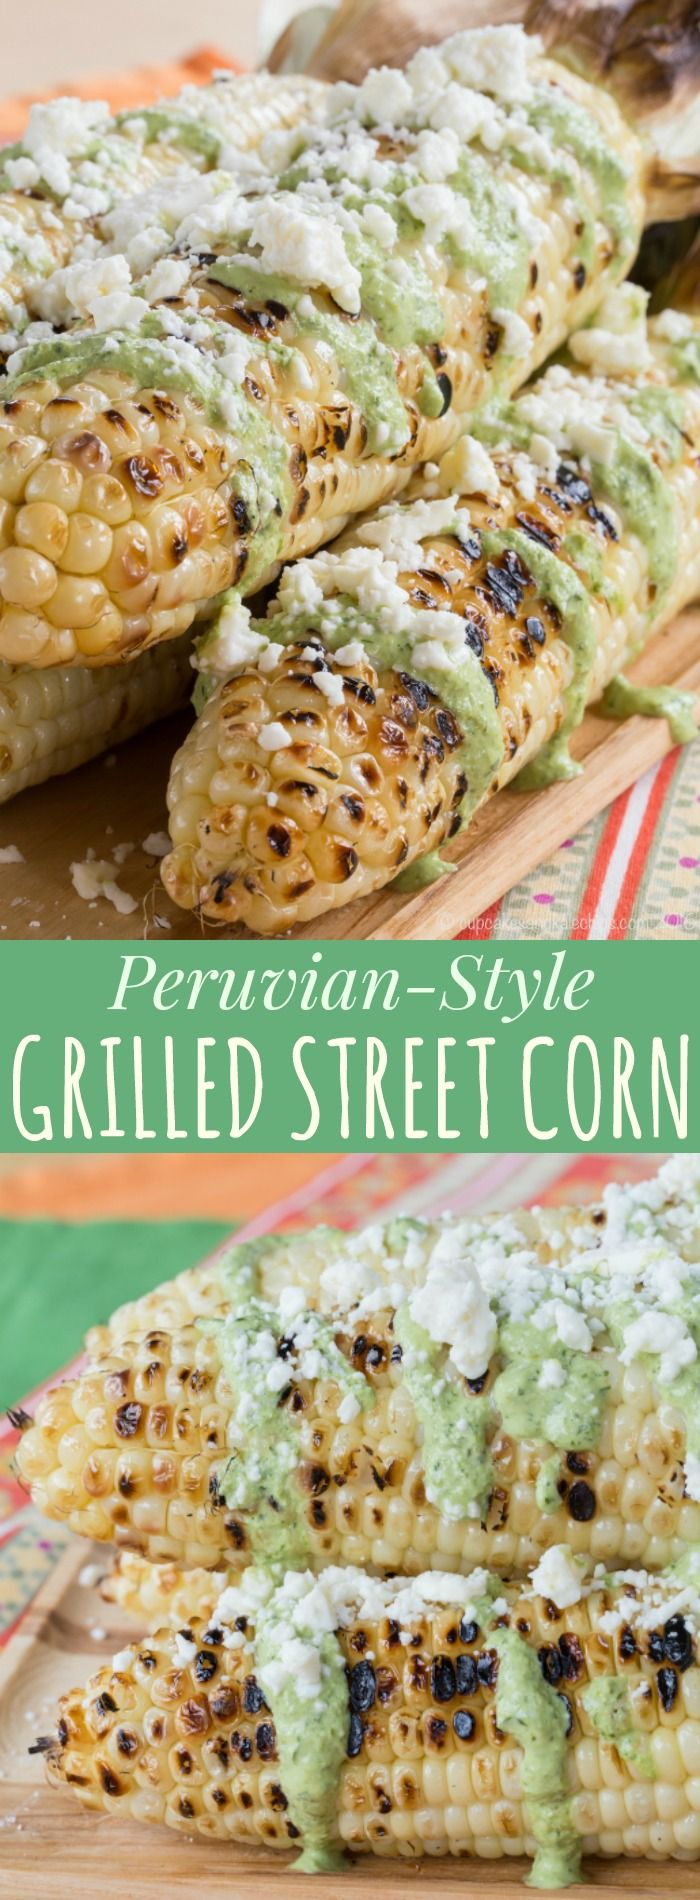 Peruvian-Style Grilled Street Corn - corn on the cob slathered with fresh and spicy Aji sauce and cheese is an easy summer side dish recipe! Gluten free